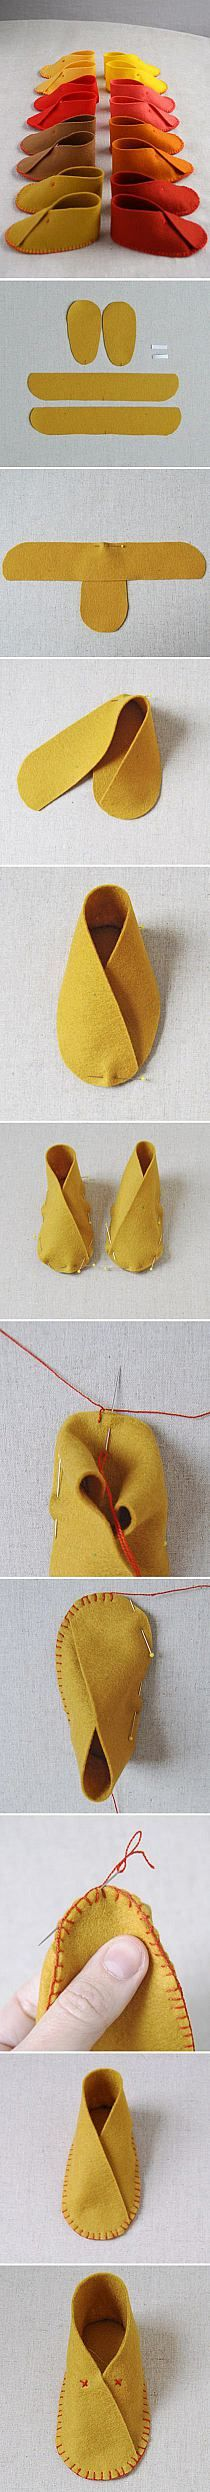 Baby slipper pattern. Plan on using this to turn felted wool from old sweaters into slipper gifts.